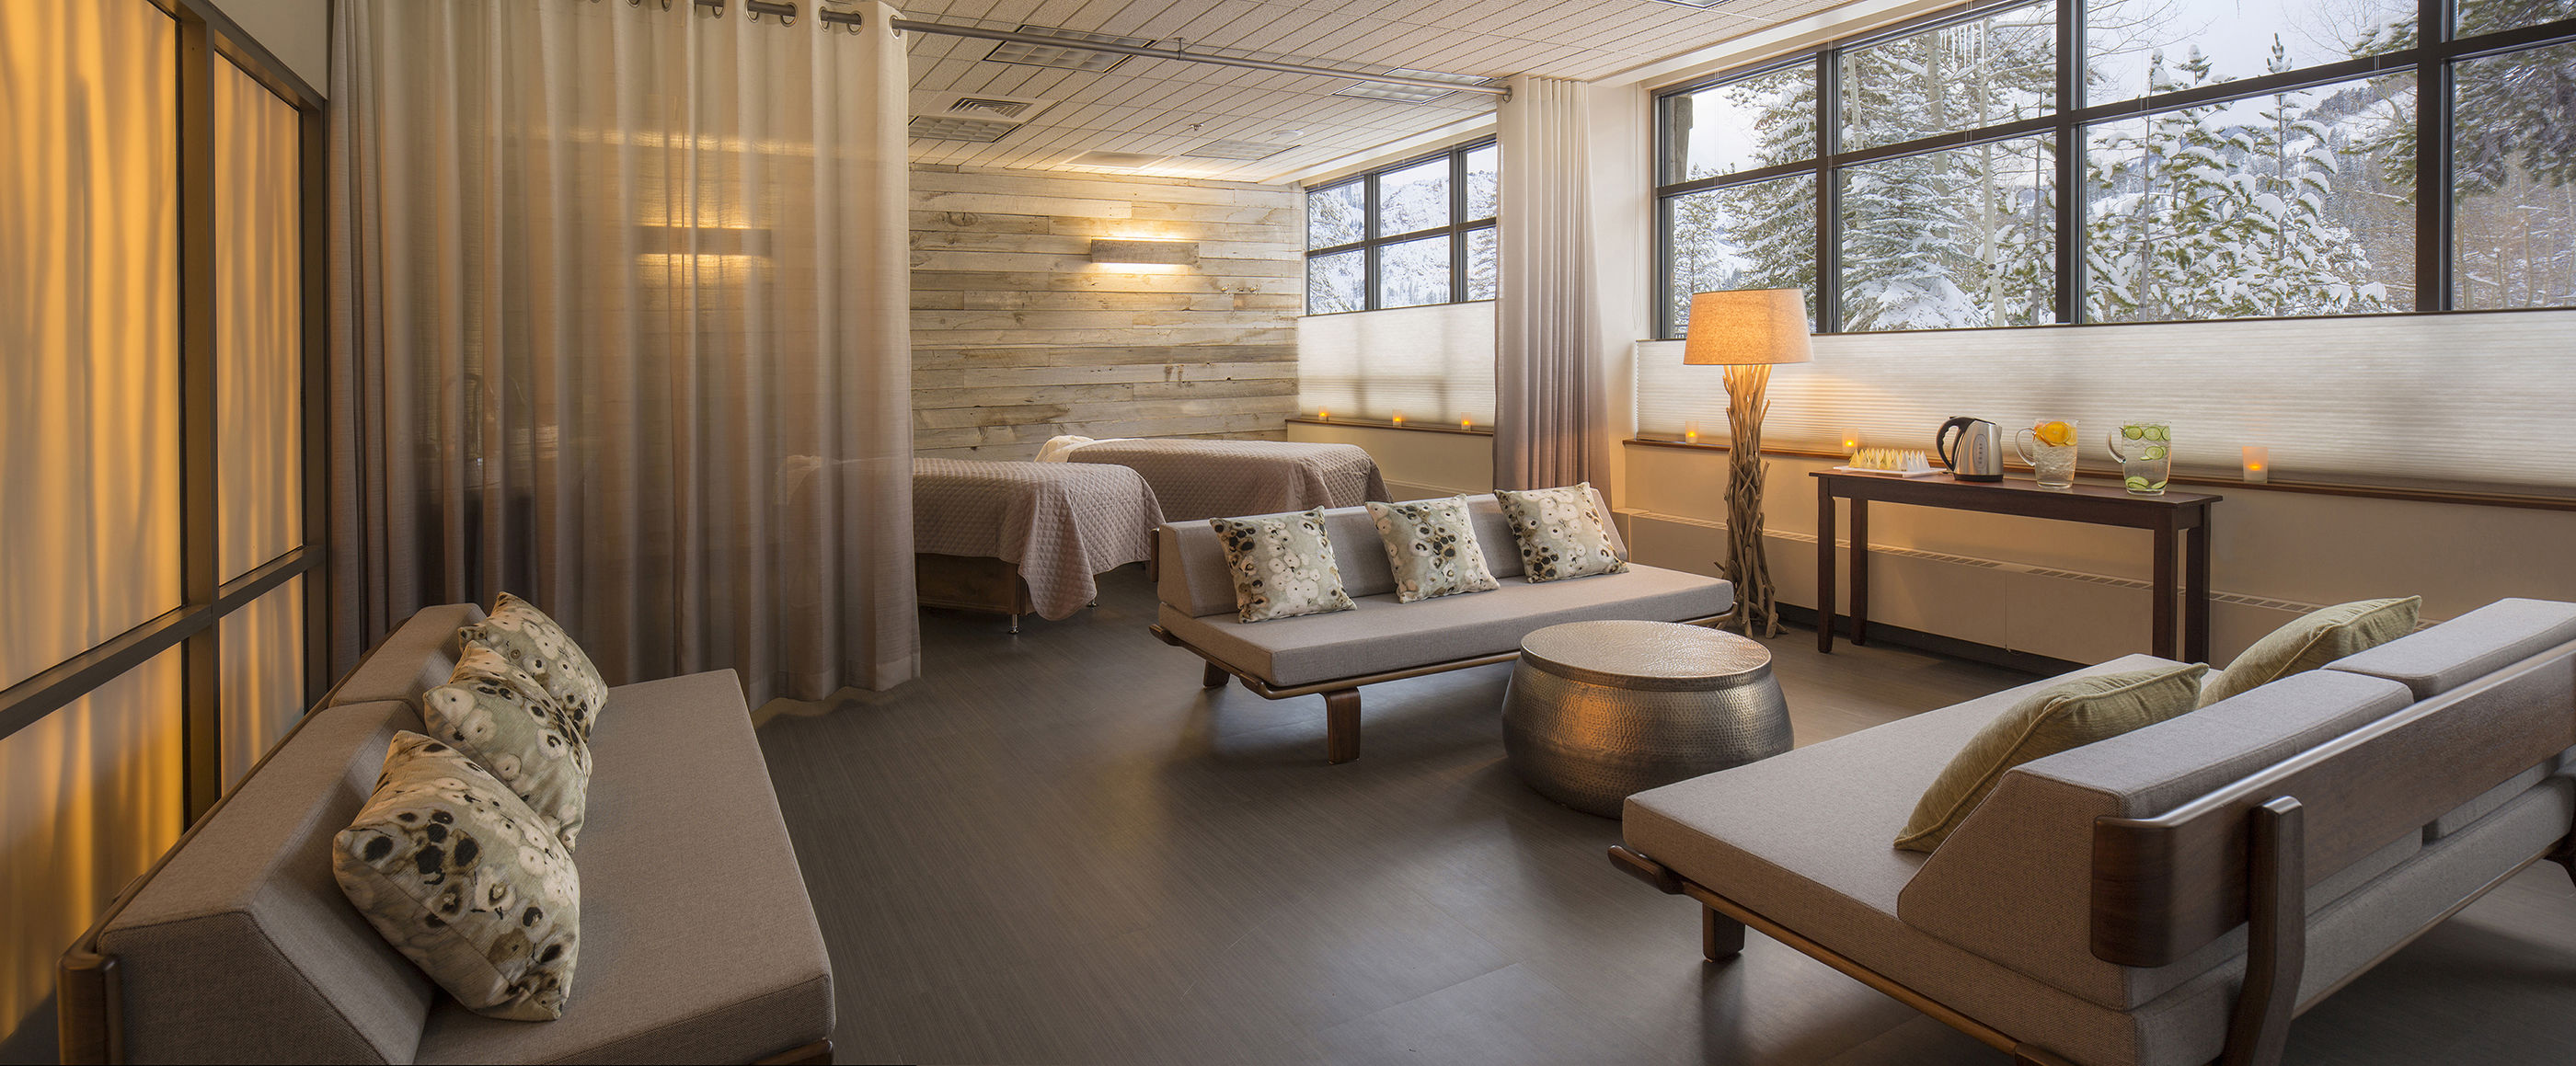 Resort at Squaw Creek's Spa Tranquility Room lounge